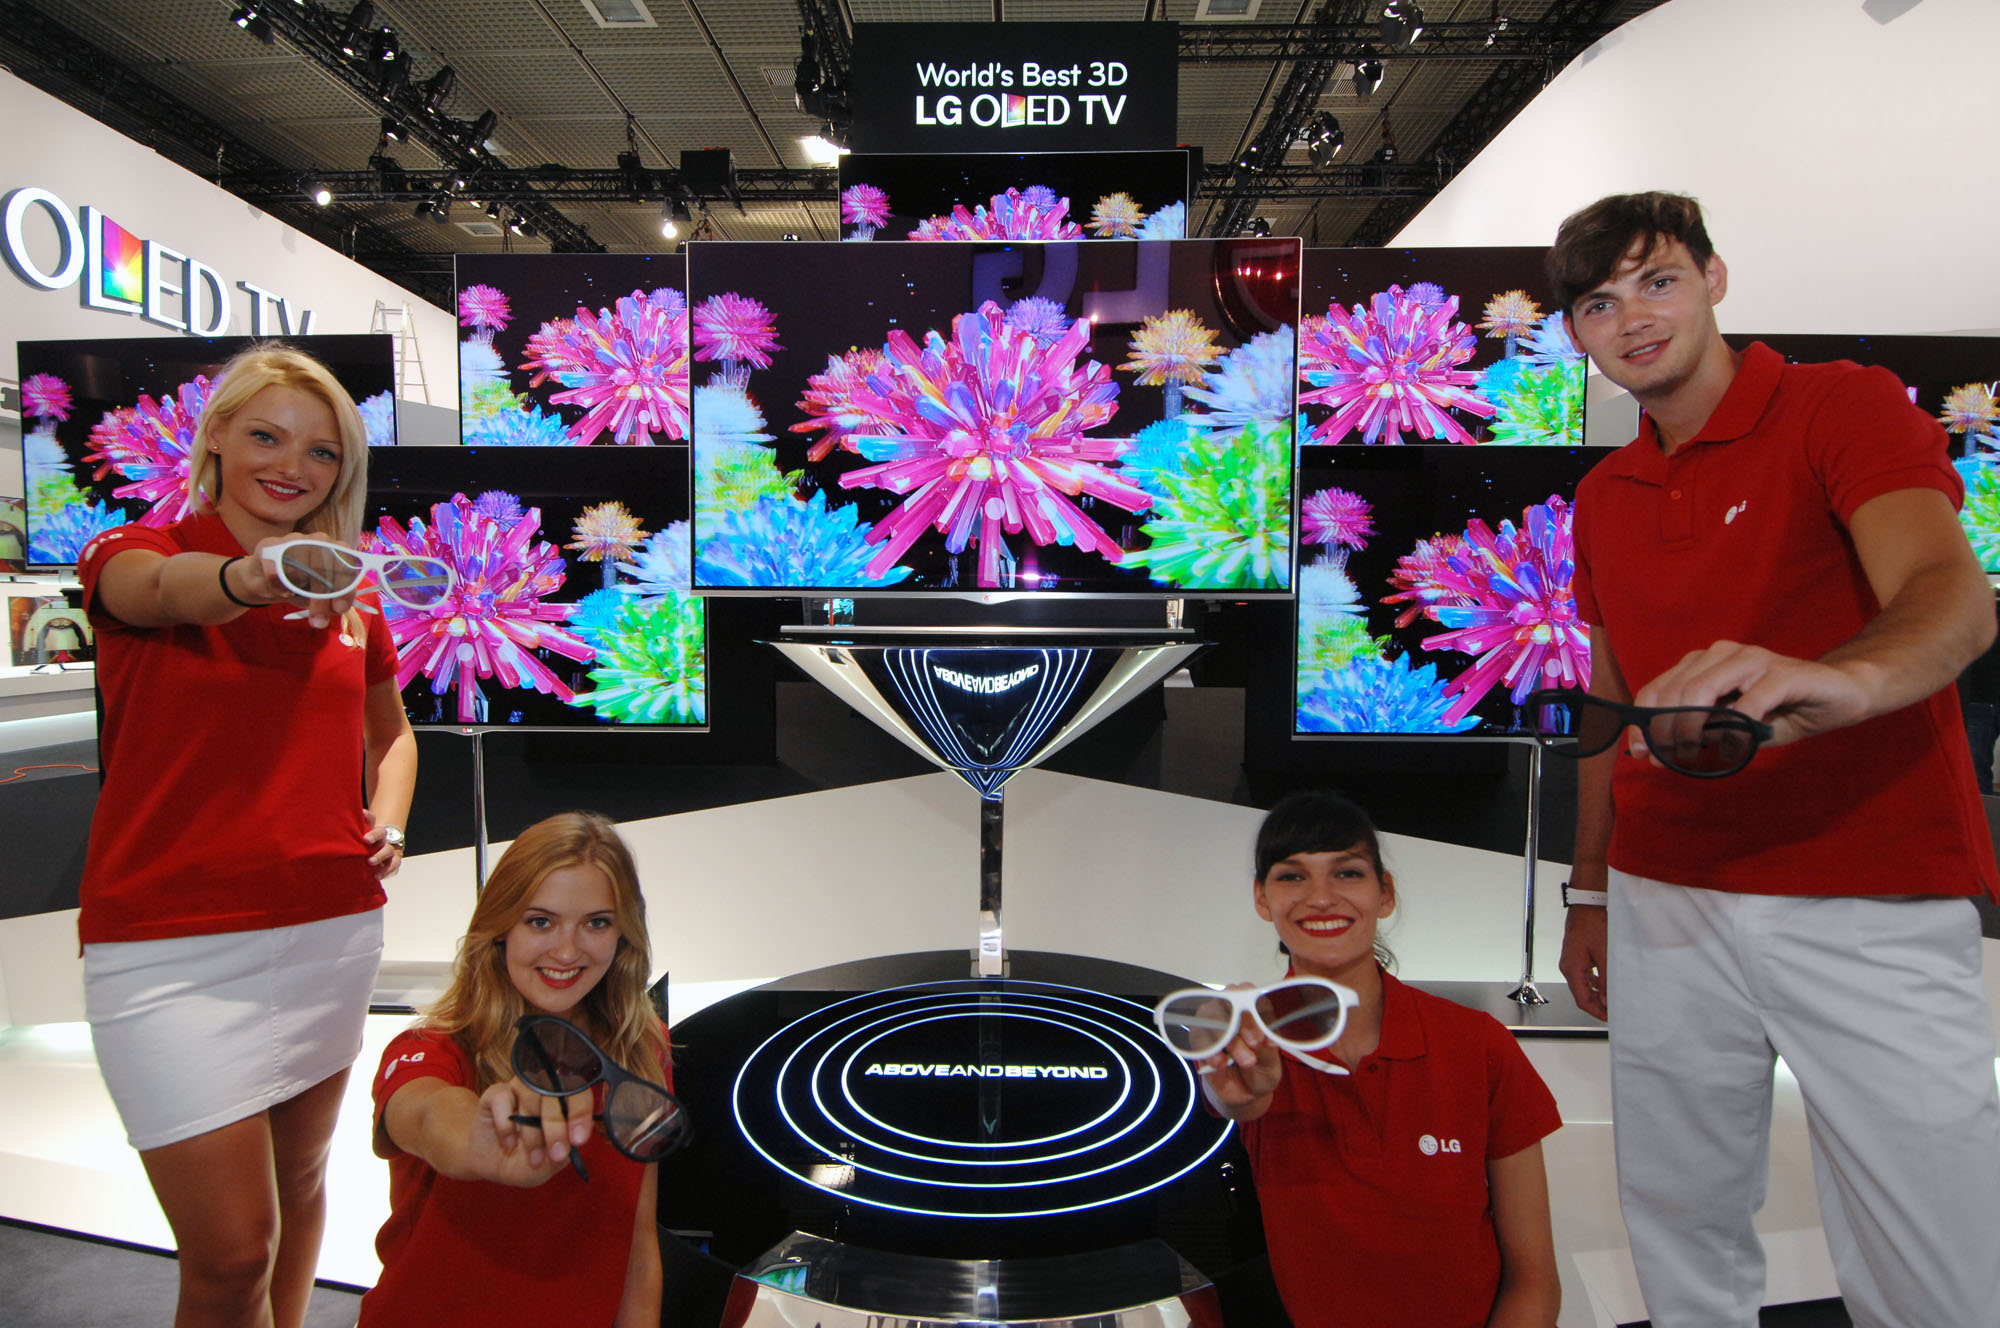 LG booth staff holding 3D glasses while presenting LG's 3D OLED TVs at IFA 2012